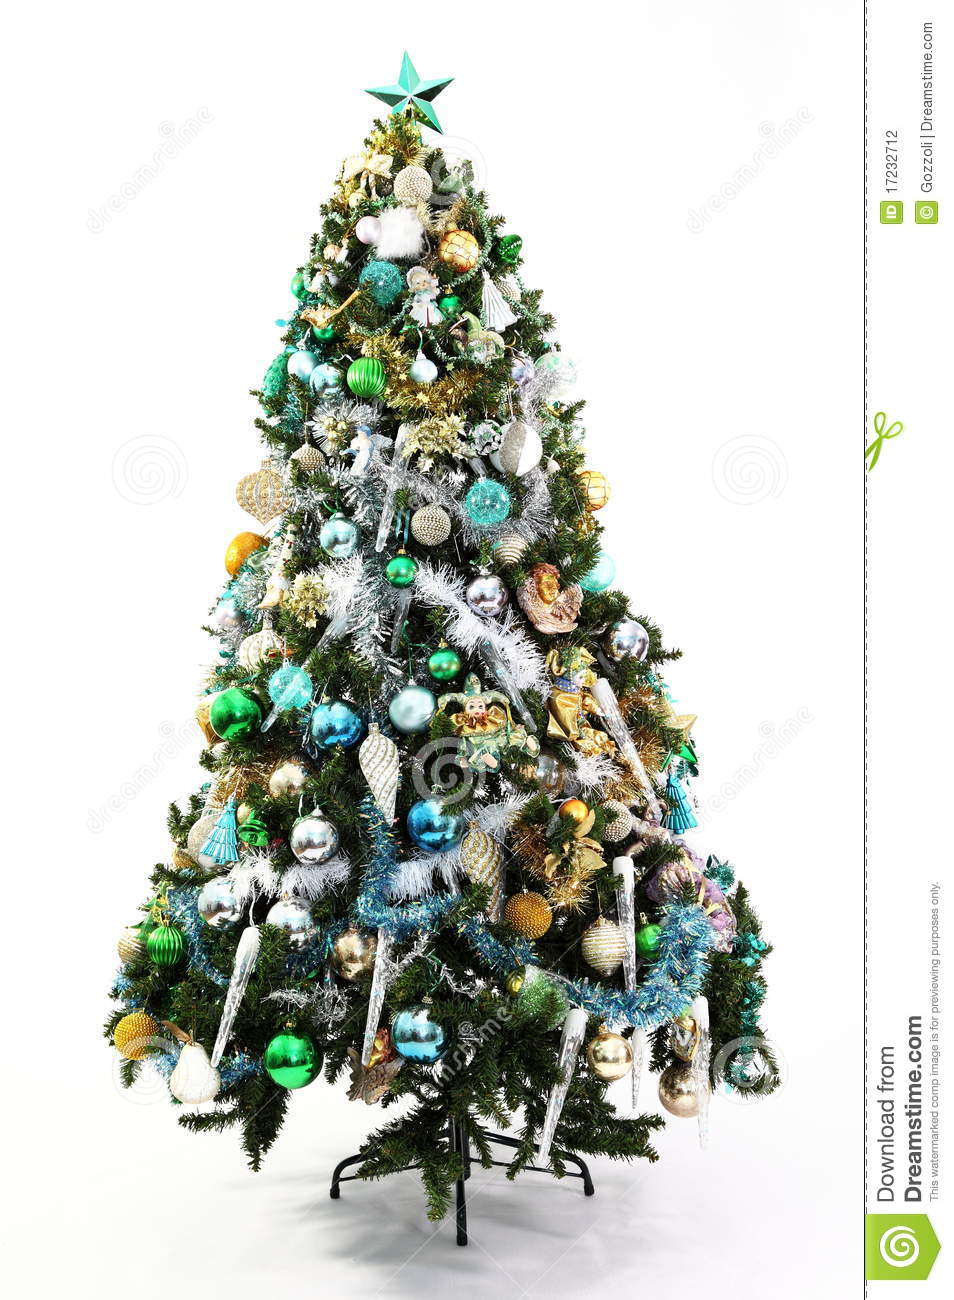 White christmas tree with blue and green decorations - photo#5